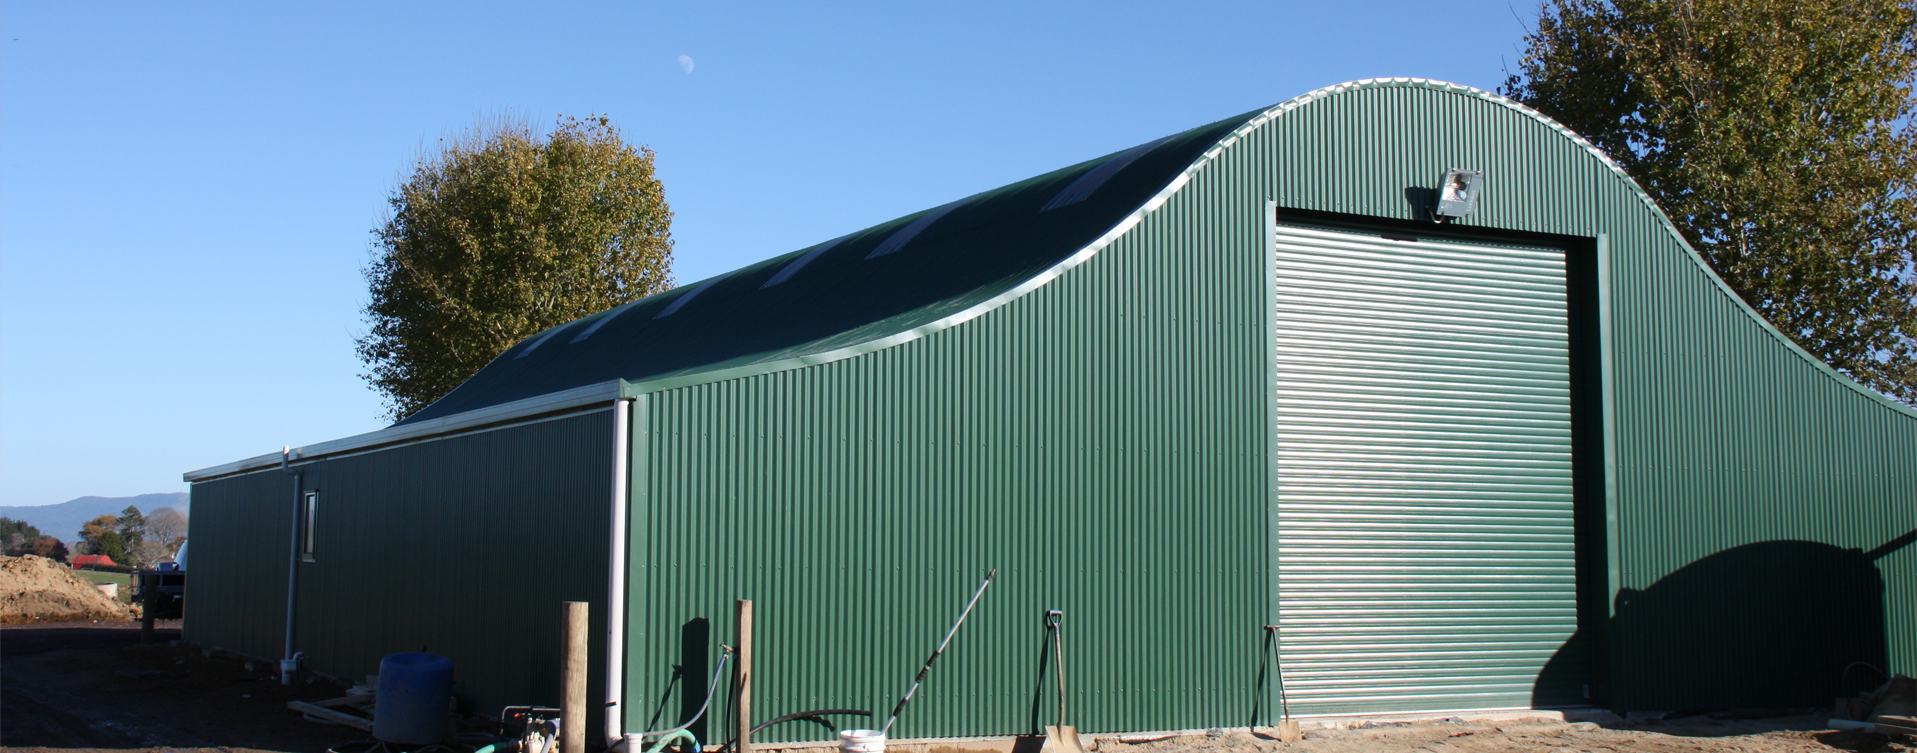 Half Round Barns And Farm Buildings Morrinsville Waikato